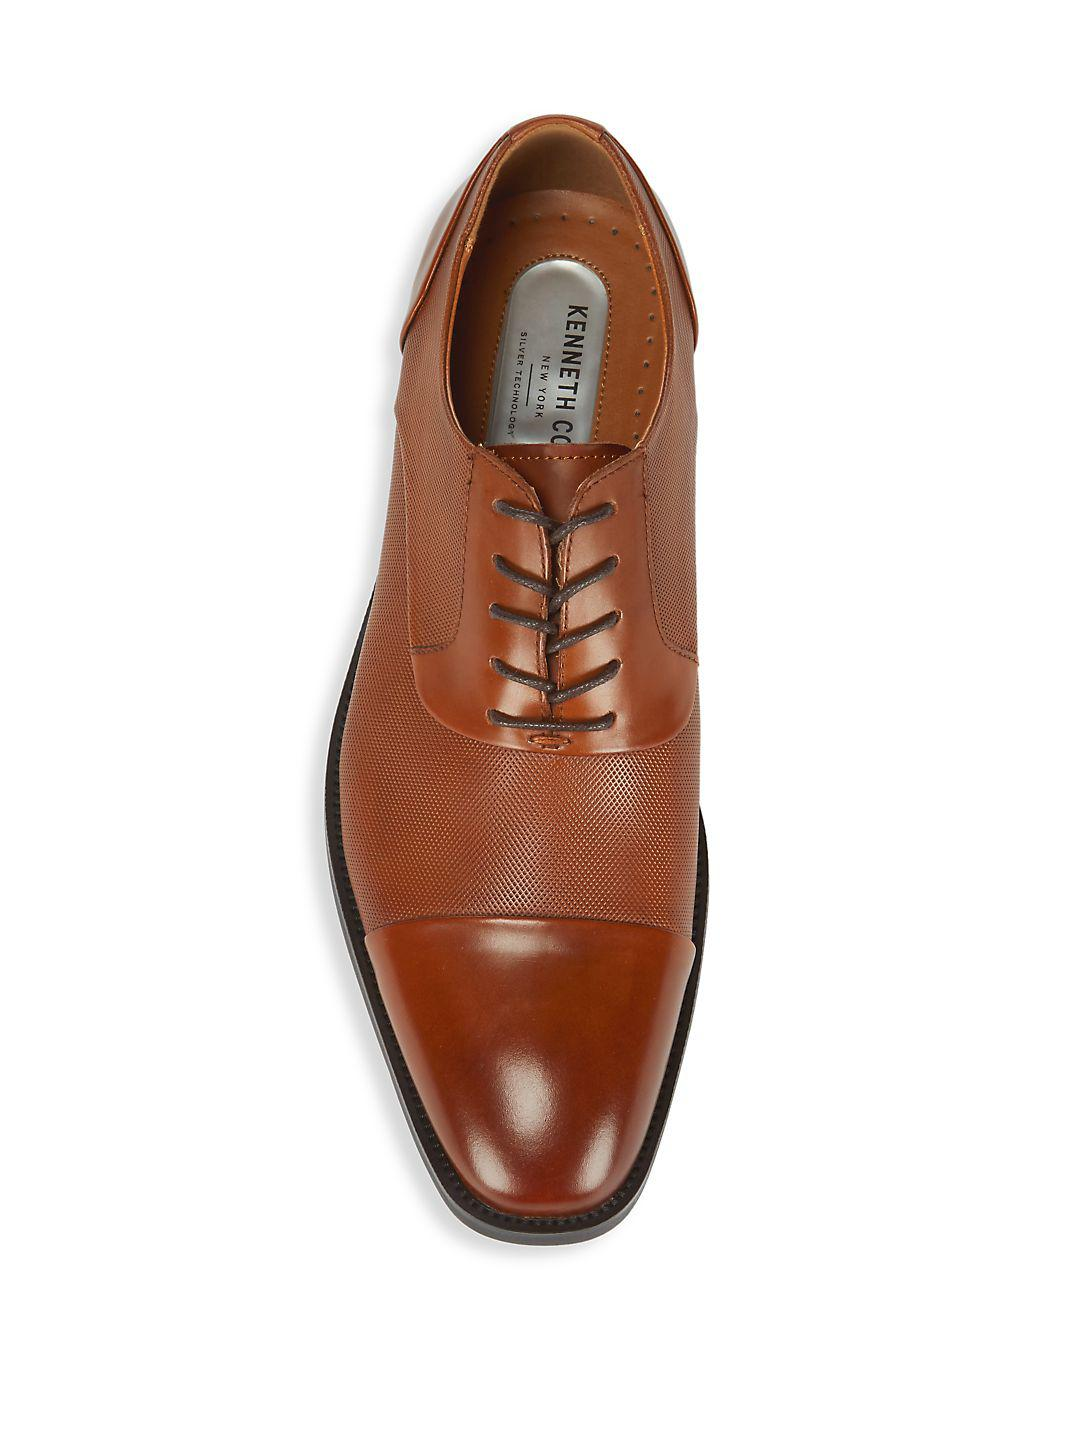 Kenneth Cole Leather Cap Toe Oxfords in Cognac (Brown) for Men